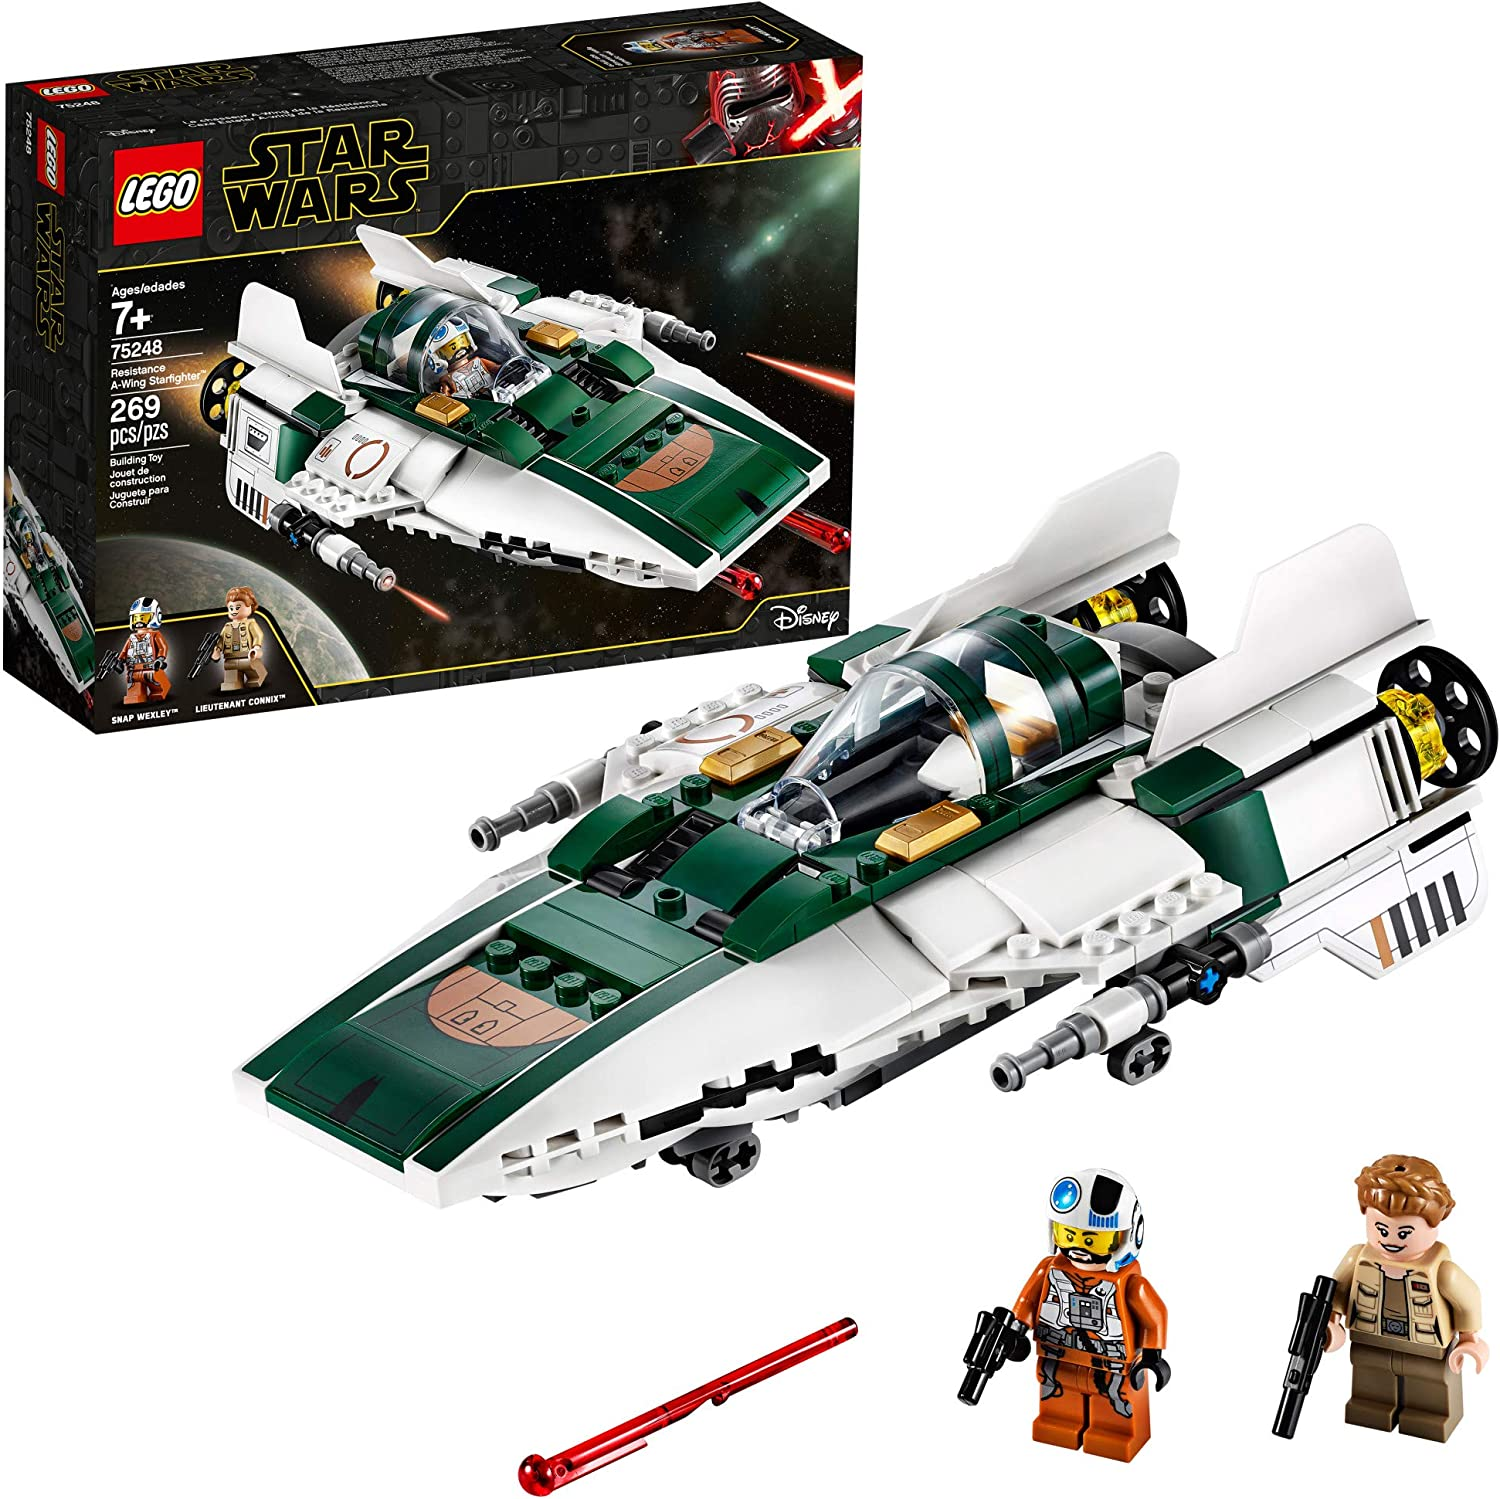 LEGO  Star Wars - The Rise of Skywalker - Resistance A-Wing Starfighter (75248) Building Toy